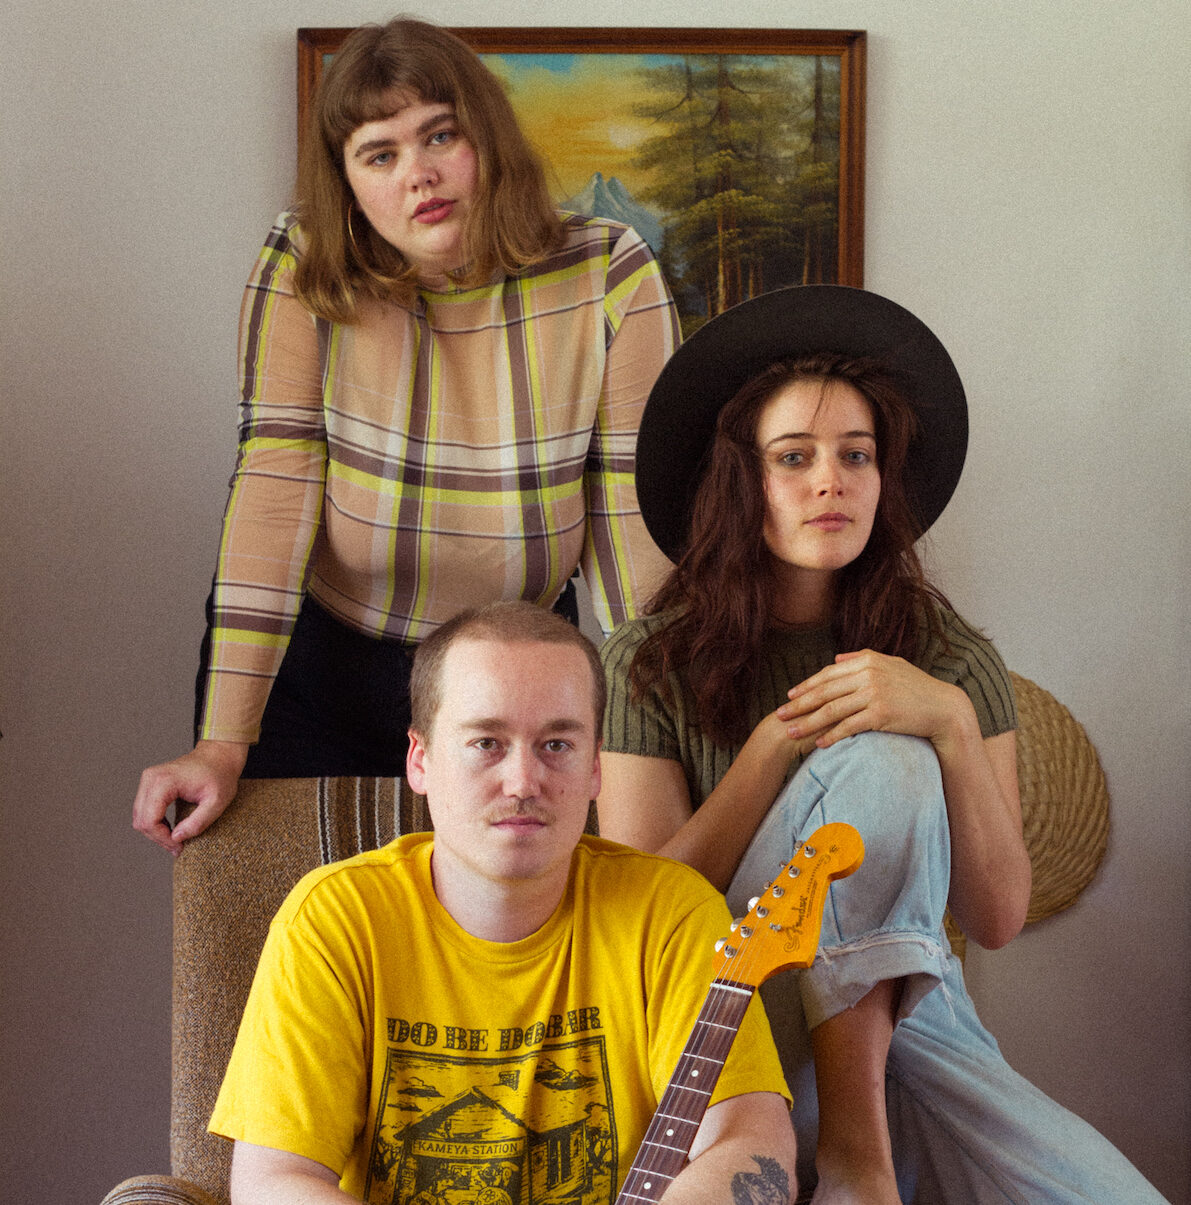 MEANJIN BASED NEW-WAVE TRIO LOULOU RELEASE DEBUT EP 'IT SPILLS OUT' // OUT NOW!